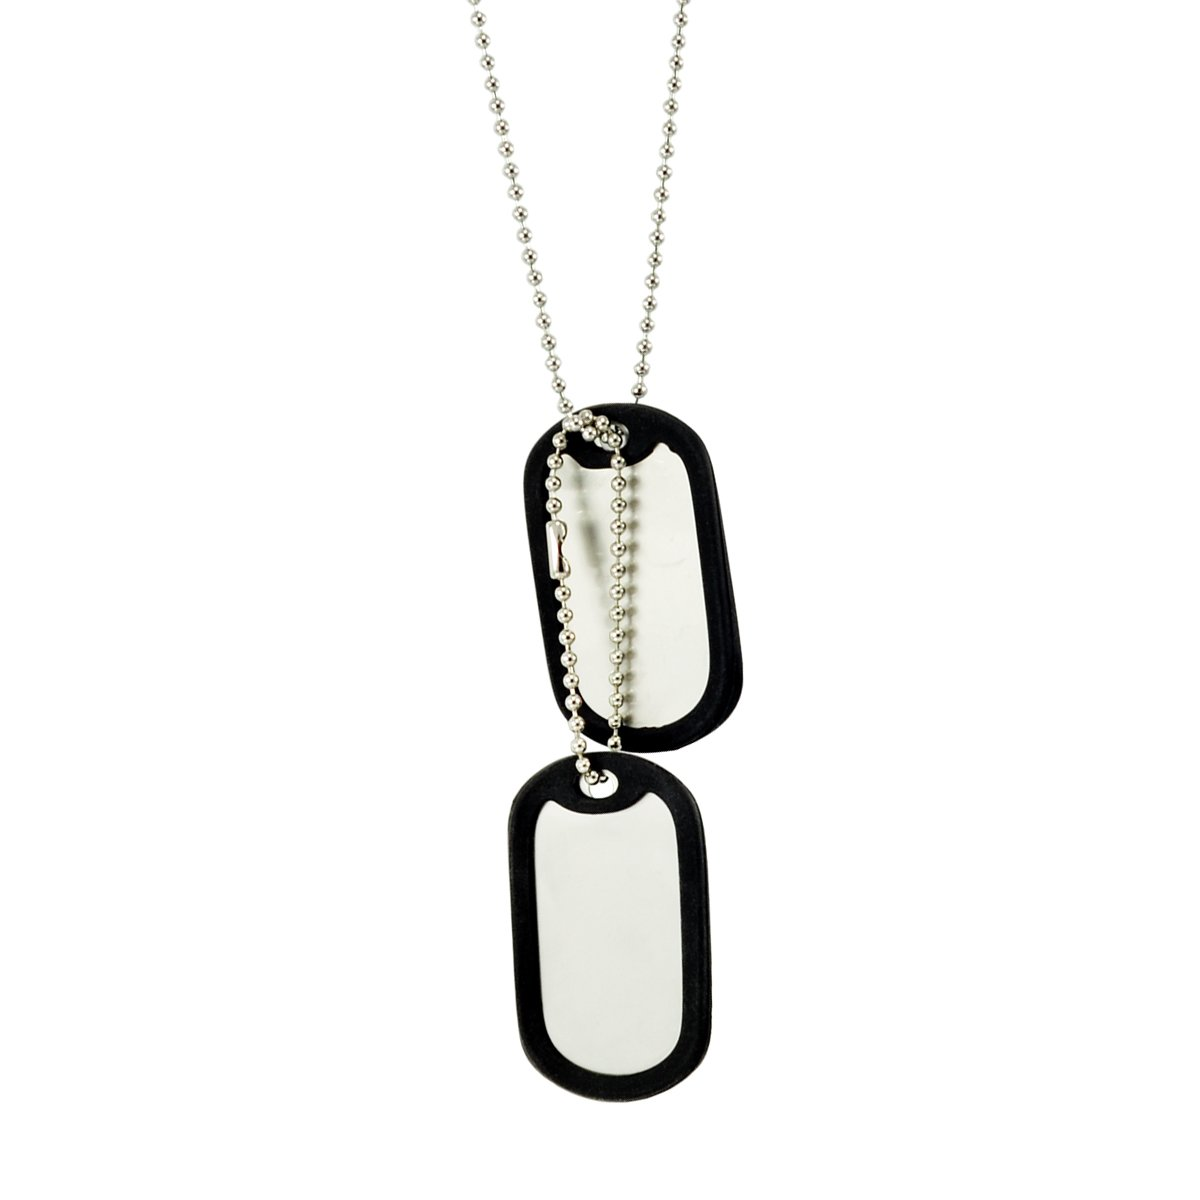 Paialco Stainless Steel Dog Tag Set Complete with Chains & Silencers